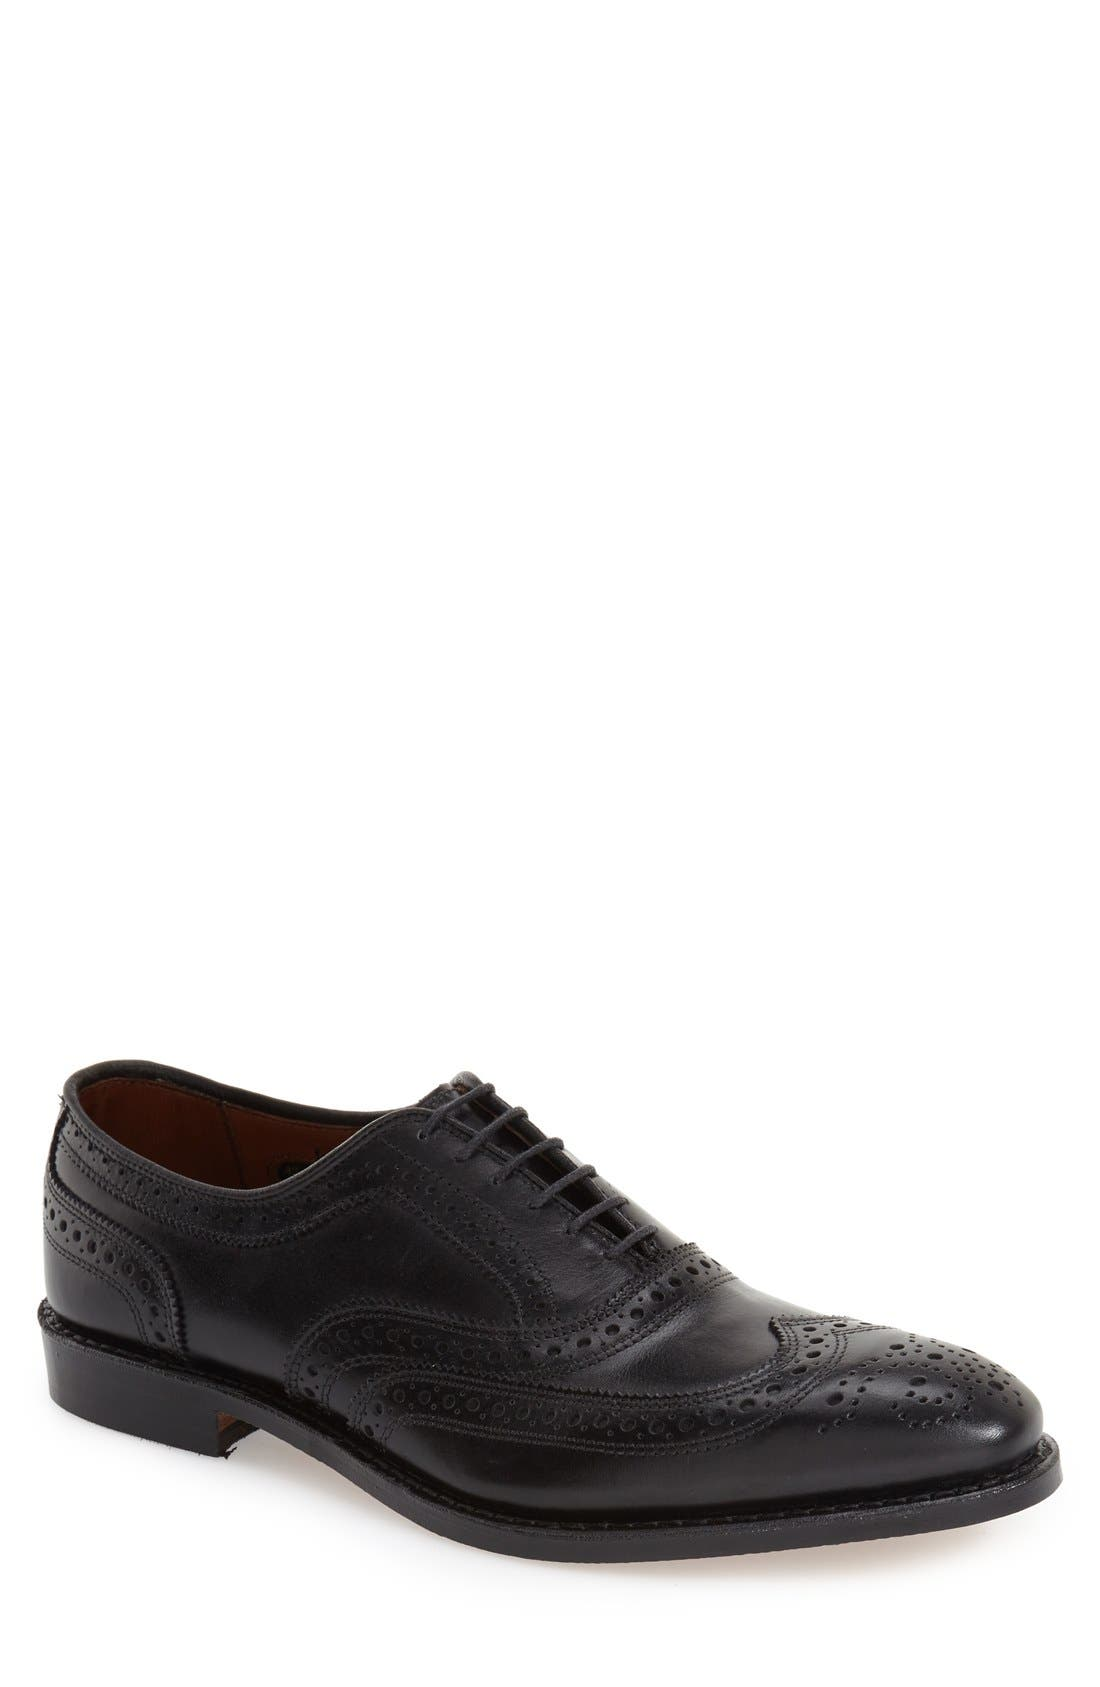 Alternate Image 1 Selected - Allen Edmonds 'McAllister' Wingtip (Men)